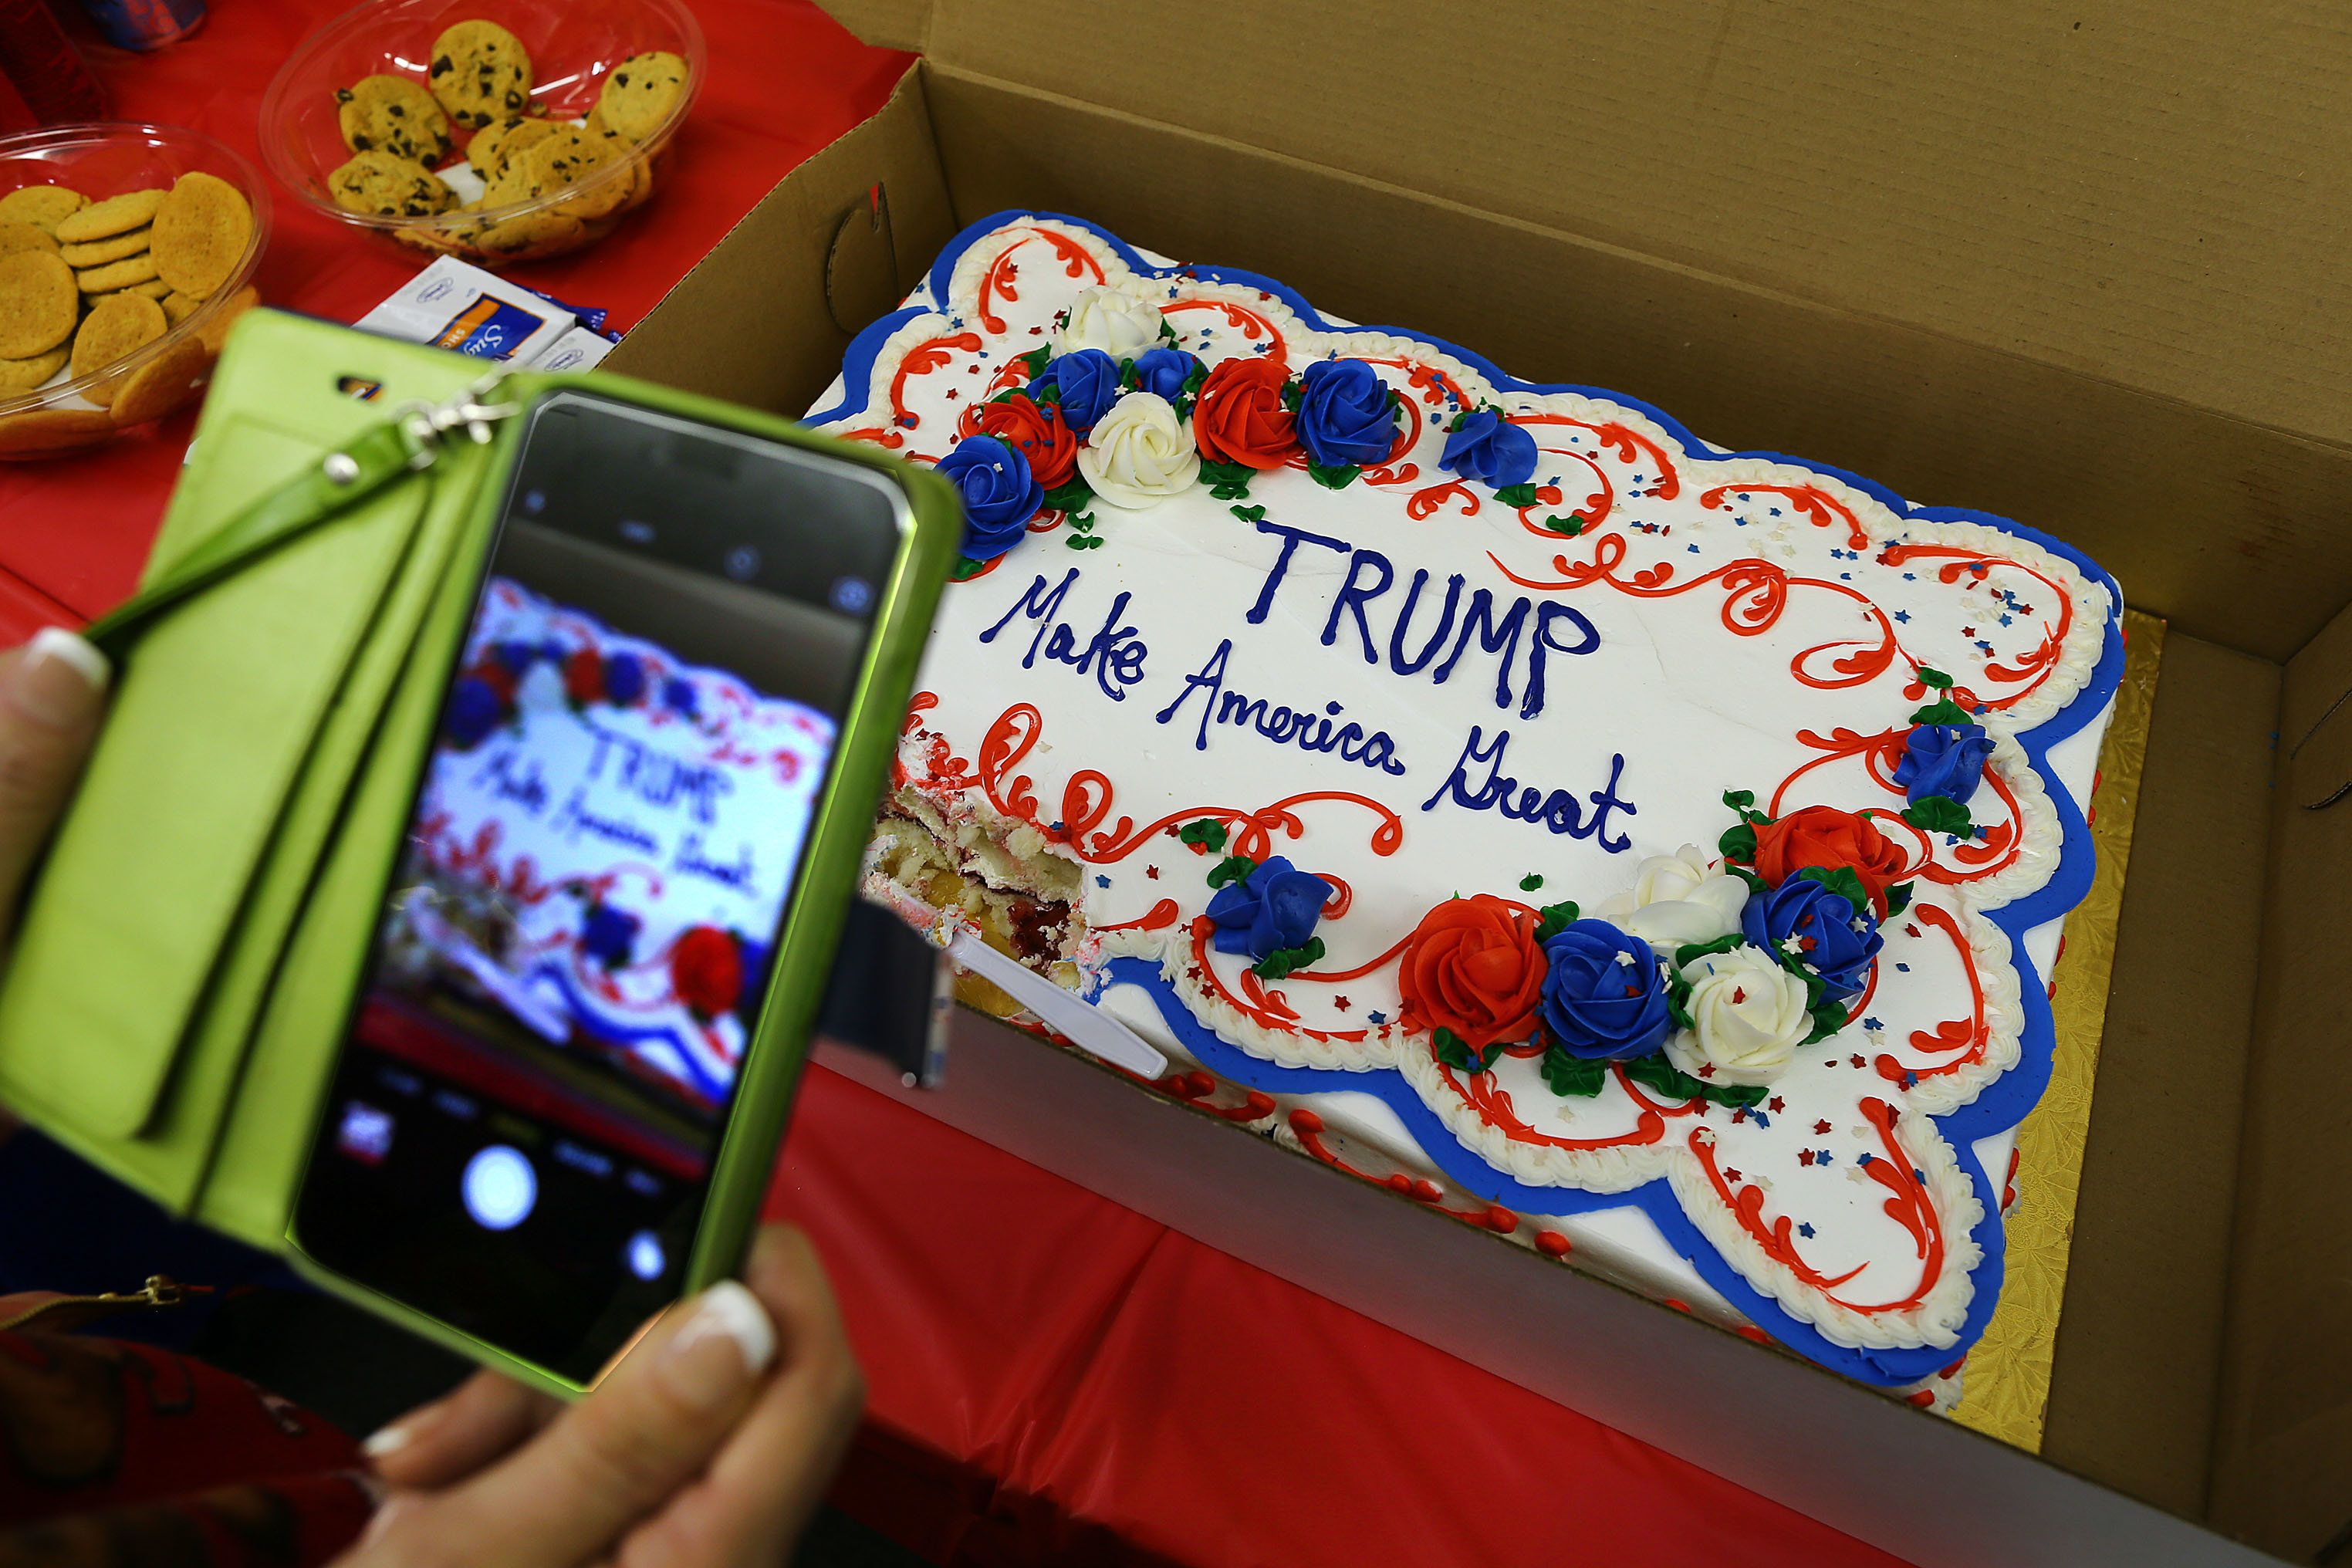 Teen Cries Foul After Bakery Refuses To Make Trump 2016